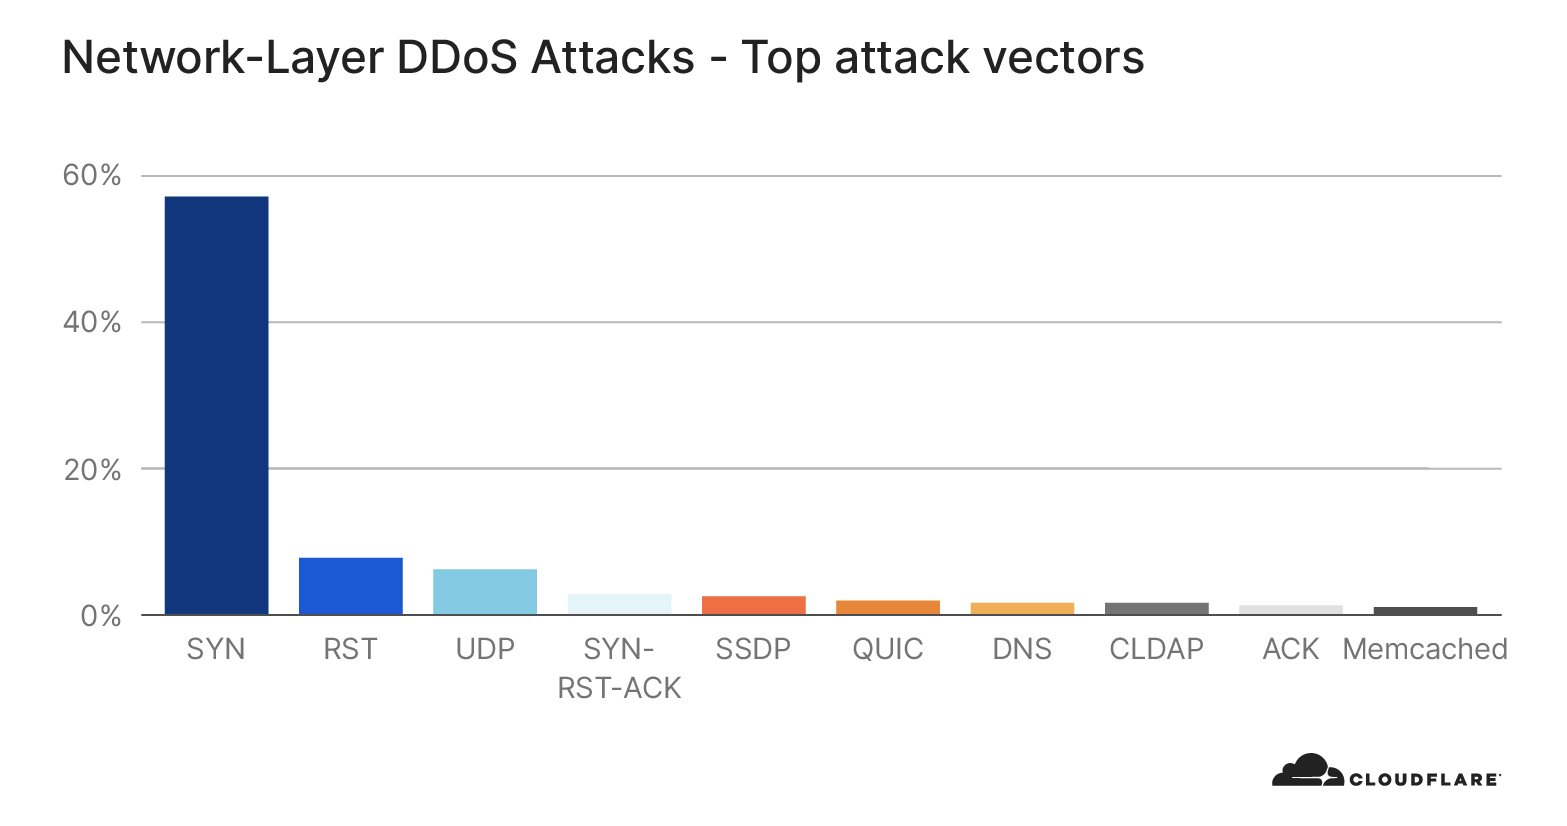 Network-layer DDoS attack trends for Q3 2020